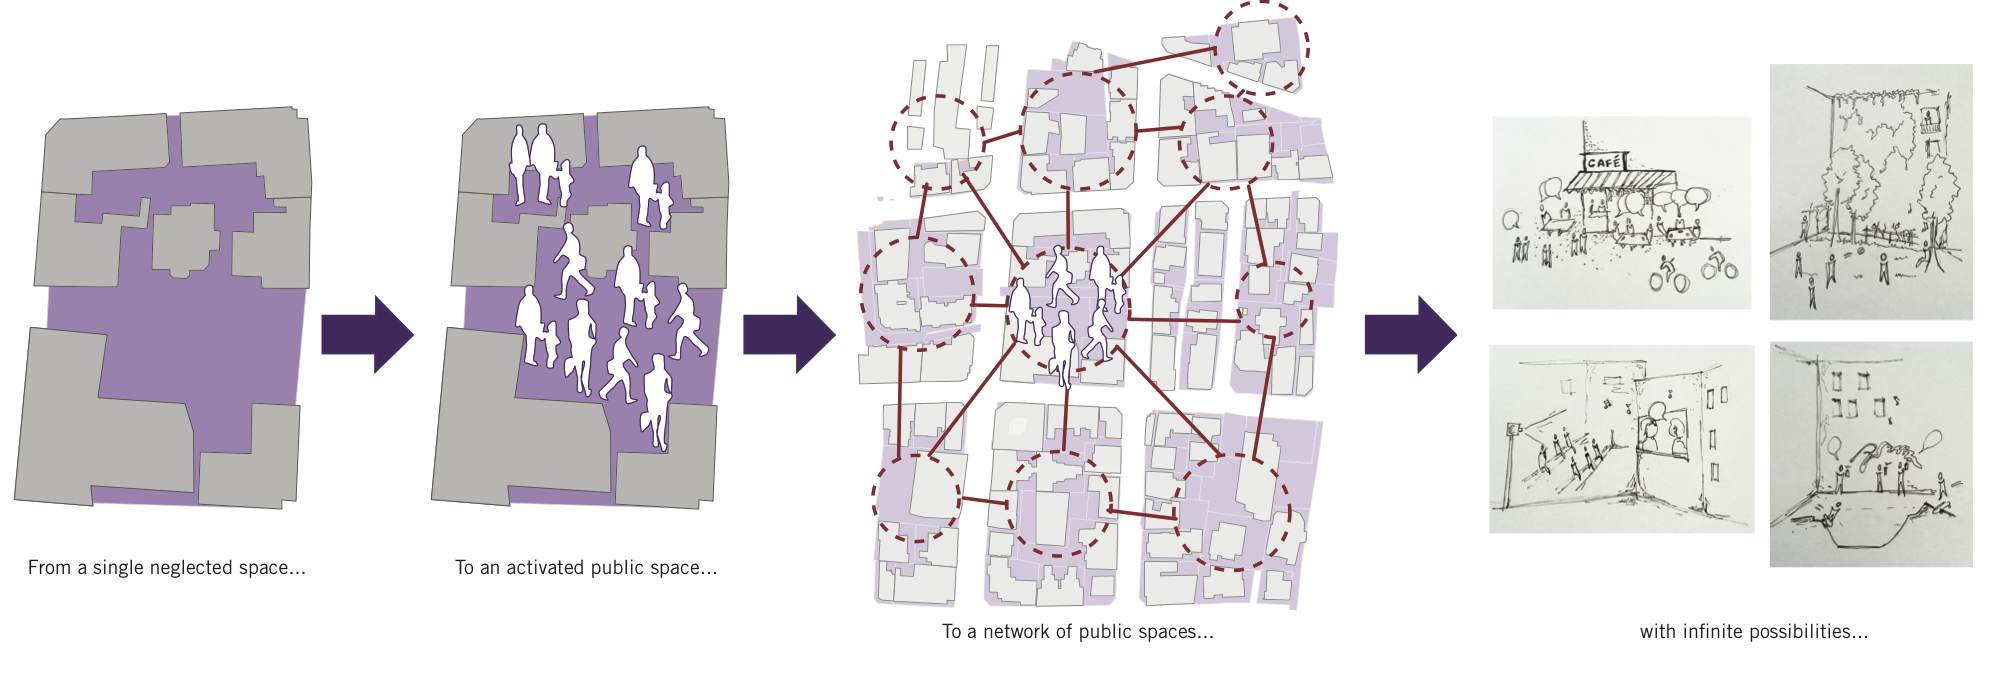 Creating a network of interconnected public spaces.